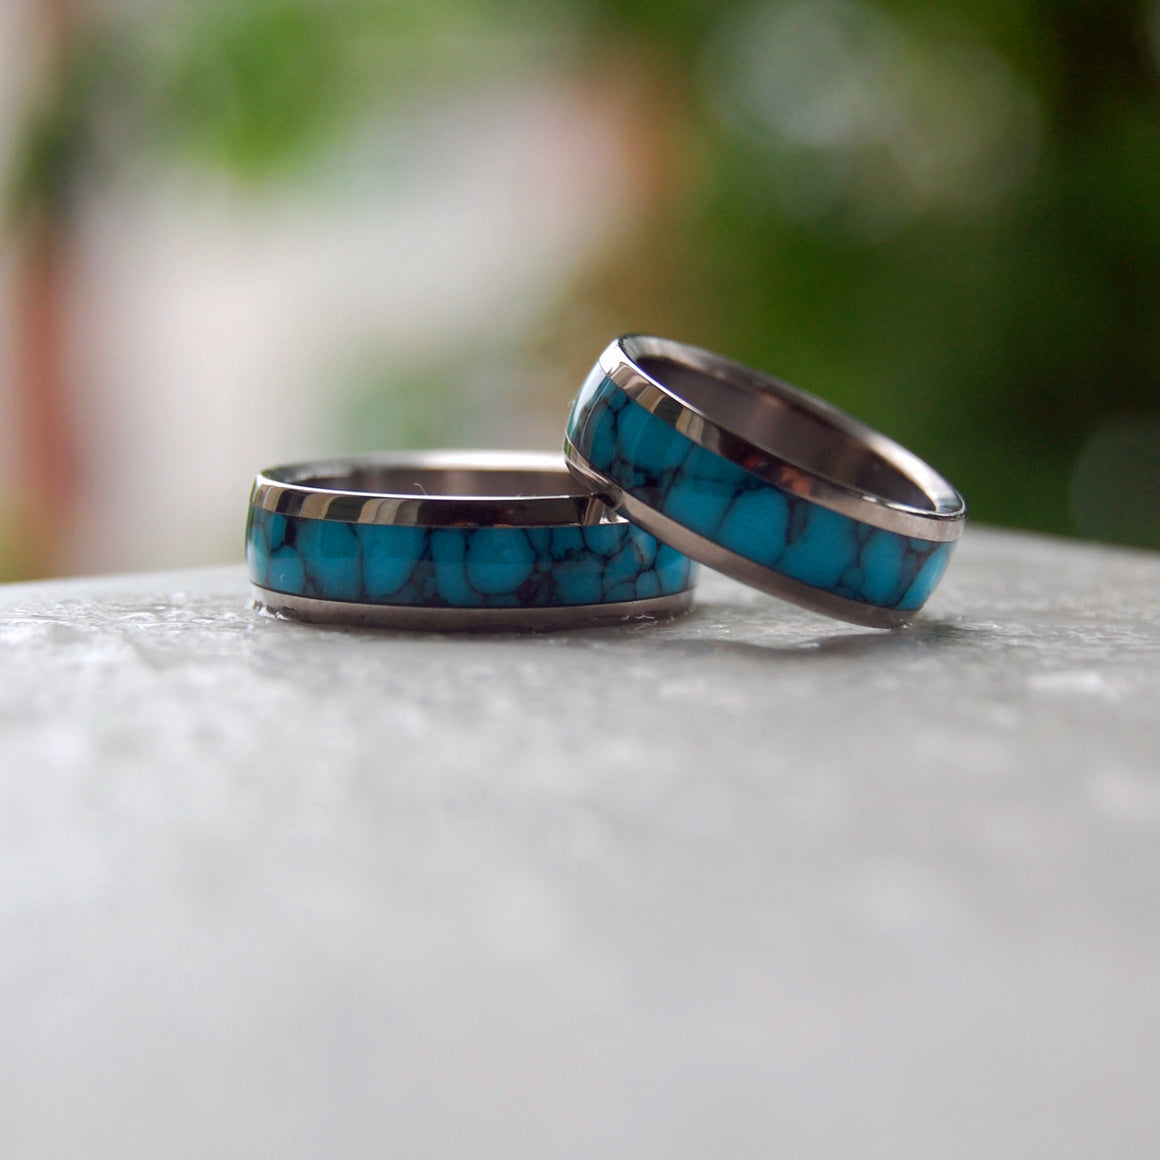 ATLANTIS | Turquoise Stone & Titanium - Unique Wedding Rings - Wedding Rings Set - Minter and Richter Designs